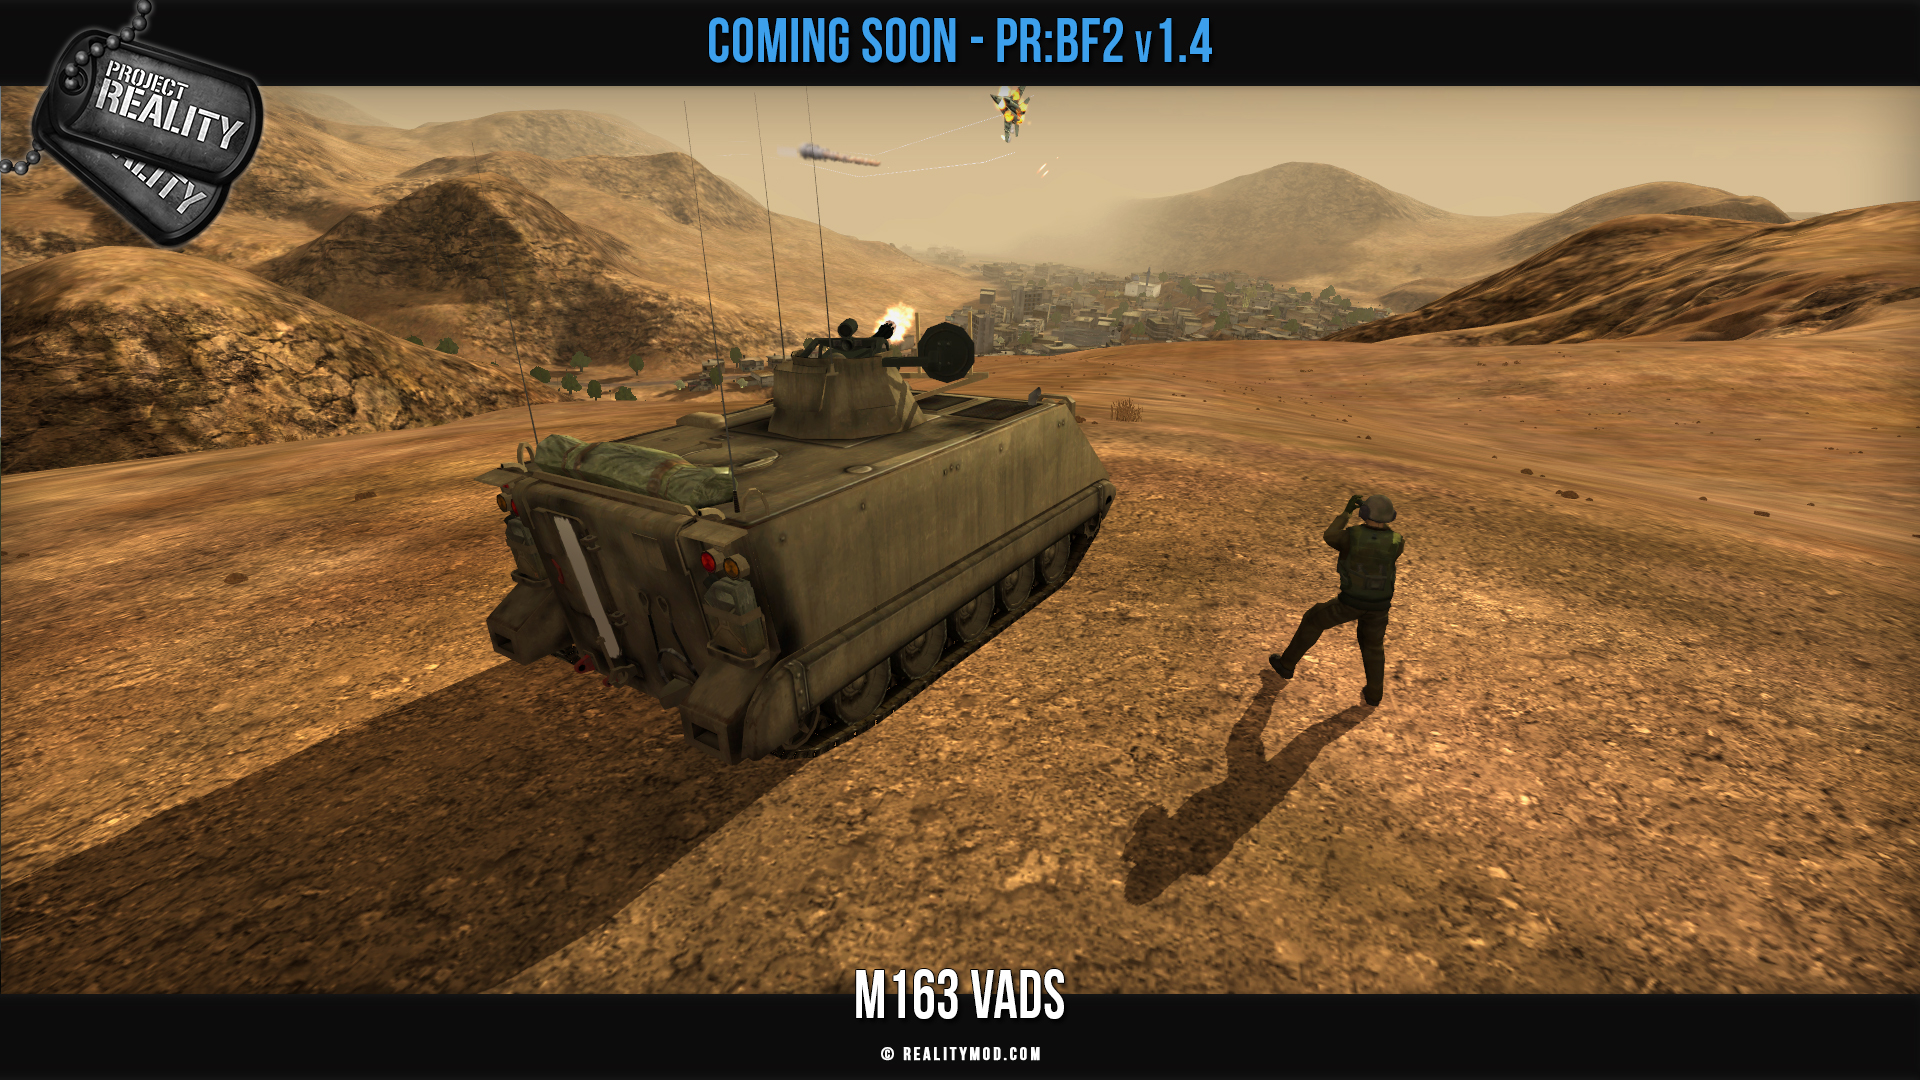 Project Reality: BF2 v1.4 Announced! news